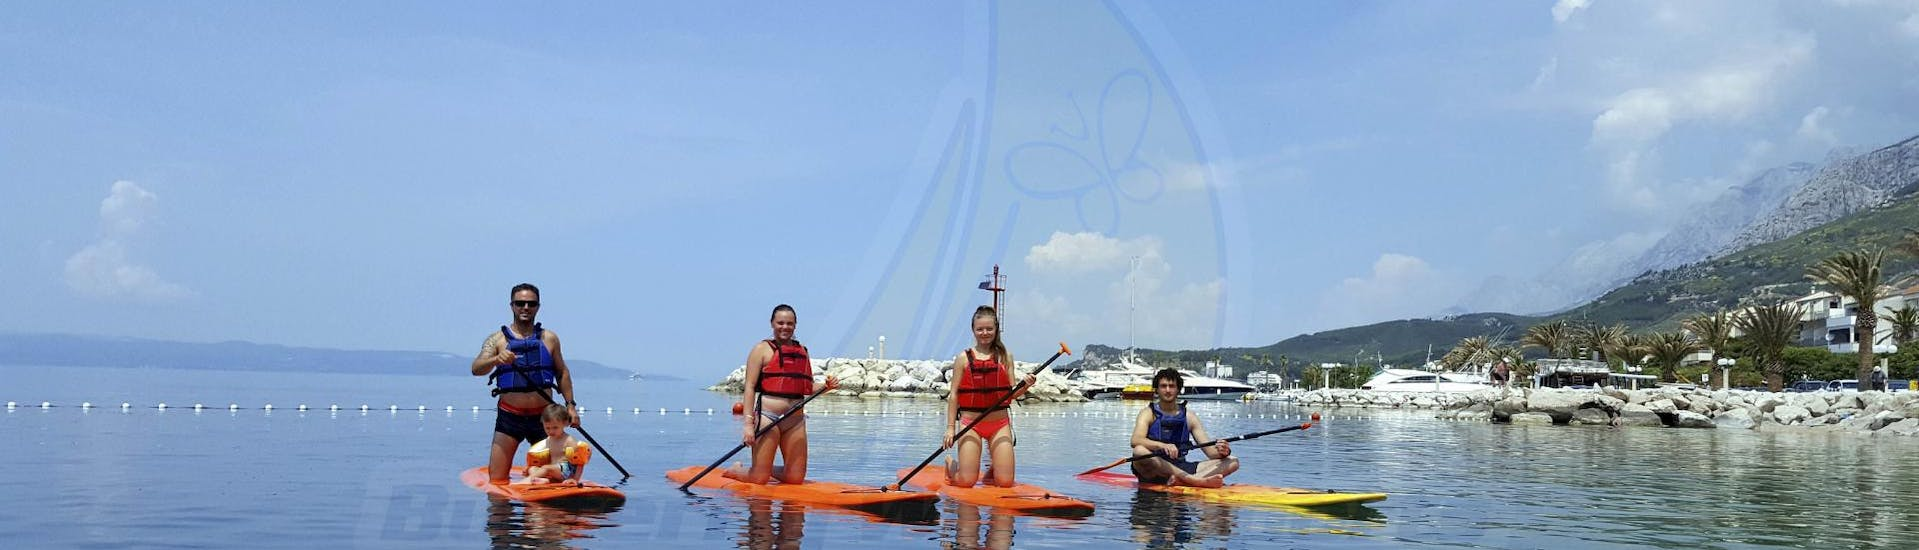 Having purchased SUP Rental - Makarska Riviera offered by Butterfly Diving & Sailing, a family is enjoying a great time paddling on a SUP on the Adriatic Sea.